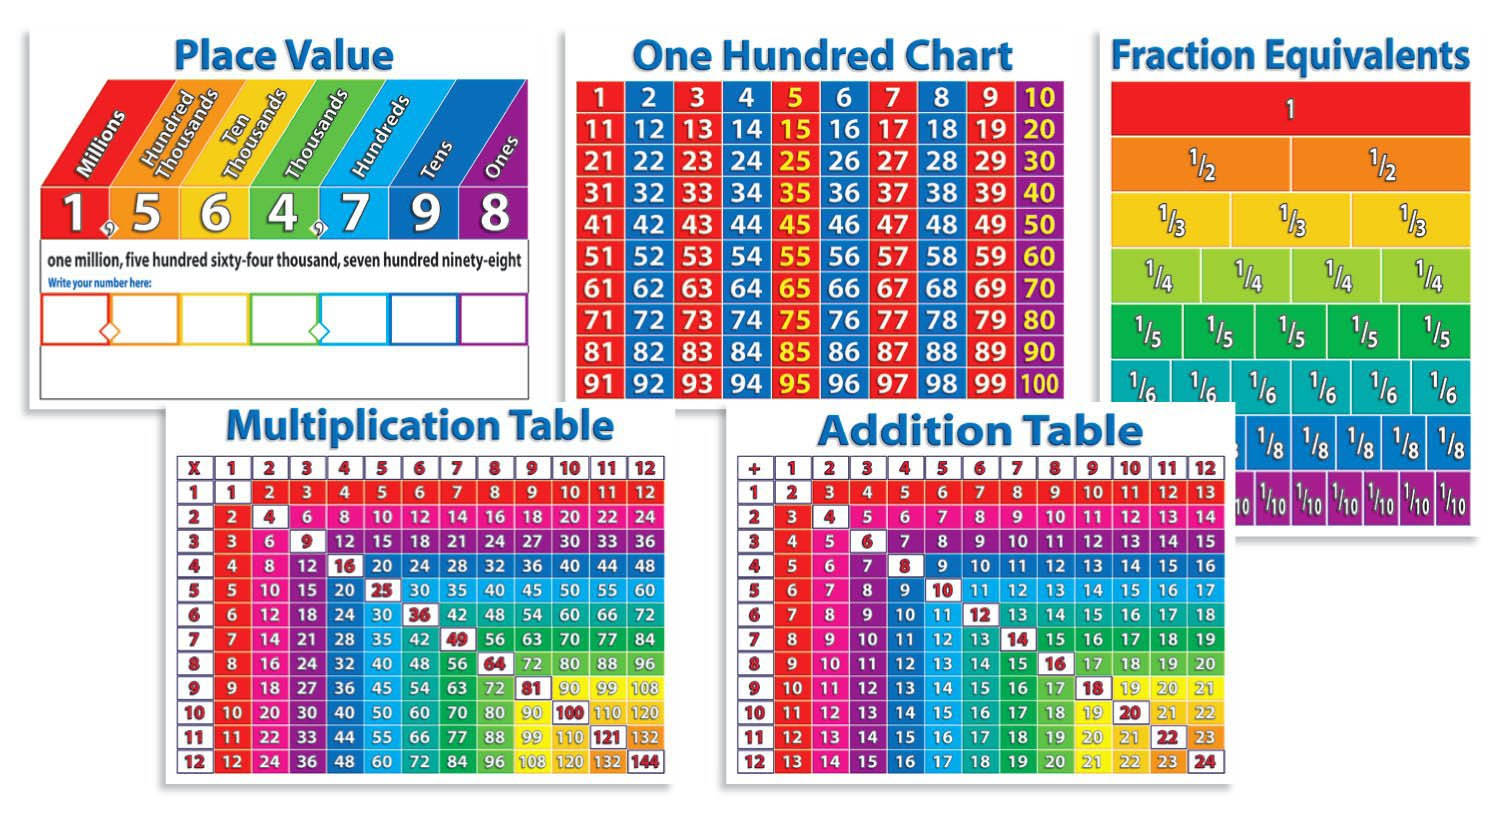 Amazon scholastic primary math charts bulletin board tf8025 amazon scholastic primary math charts bulletin board tf8025 themed classroom displays and decoration office products nvjuhfo Gallery